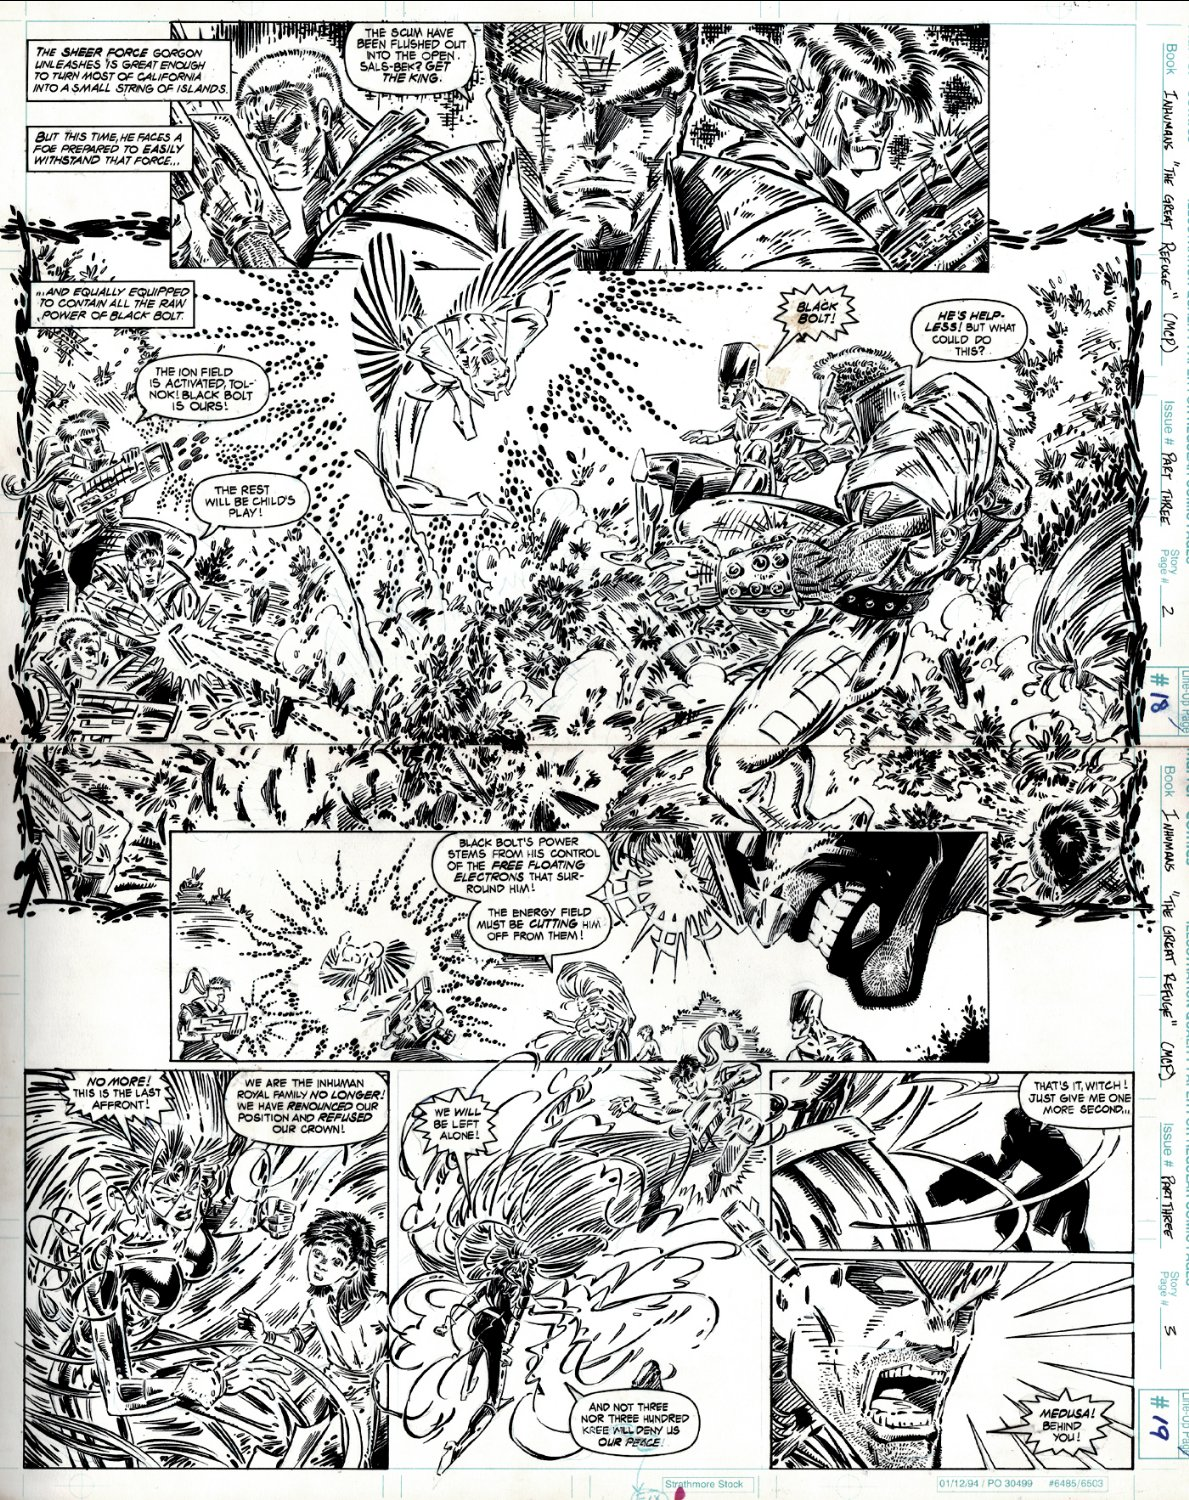 Inhumans: The Great Refuge #1 p 18-19 Double Spread Splash (Black Bolt, Medusa Battling KREE!) 1995